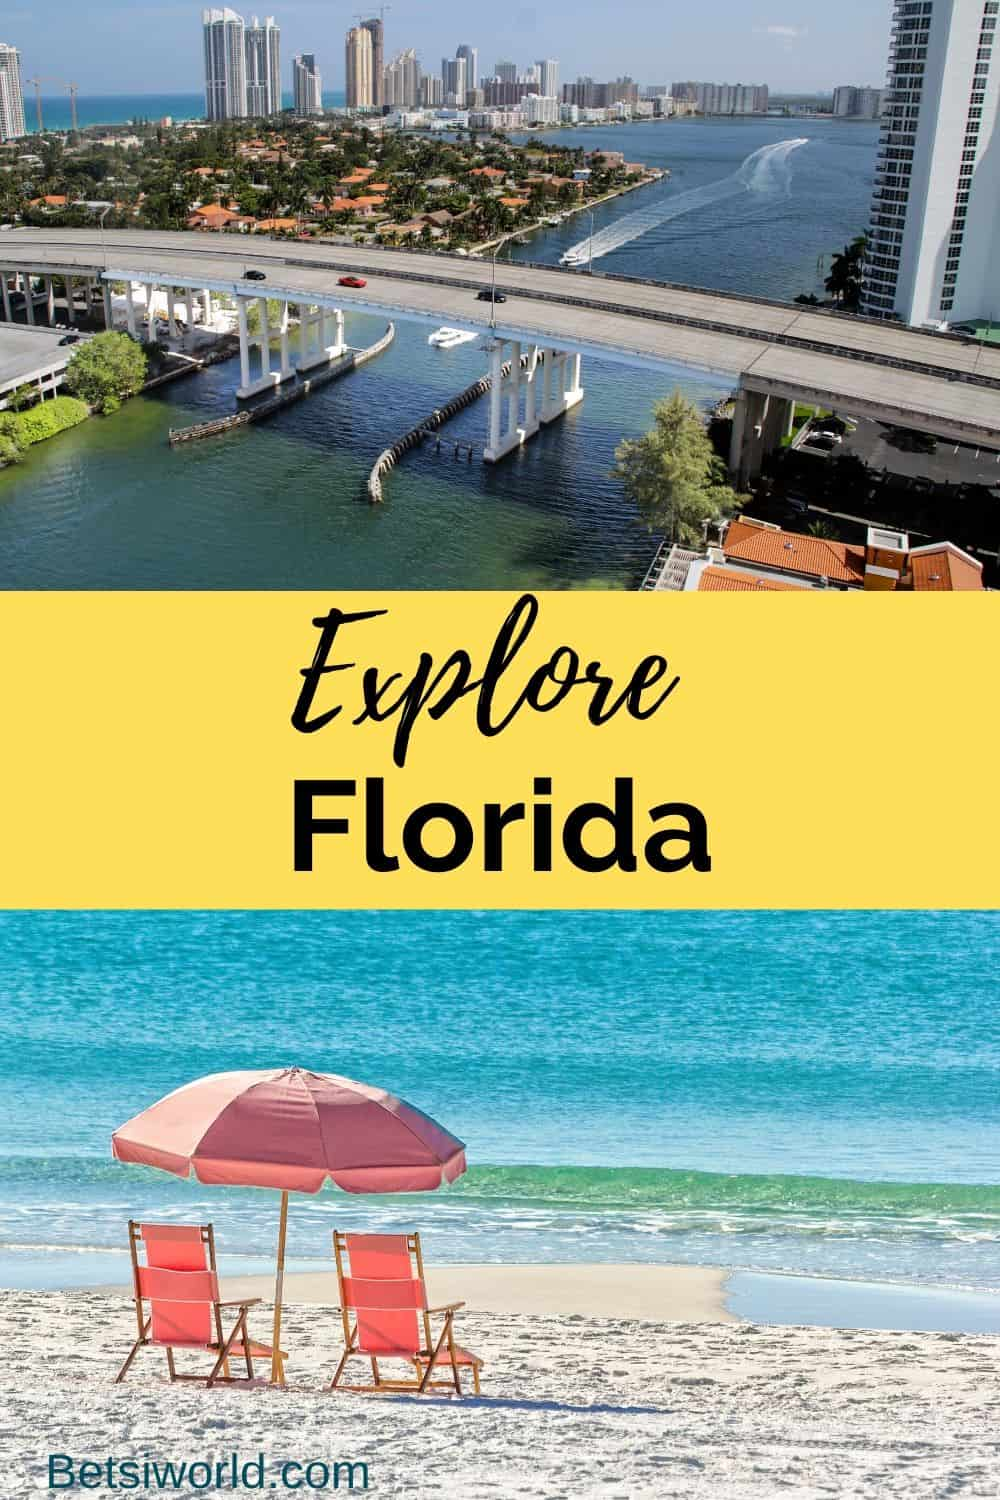 No matter where you lean, Florida has an ideal destination. Laid-back and relaxing on one of Florida's sugar sand beaches, fishing fun catching some of Florida's fresh fish, a romantic getaway for two, or theme park fun, Florida has it all! #Floridavacation #Florida #Floridagetaways betsiworld.com